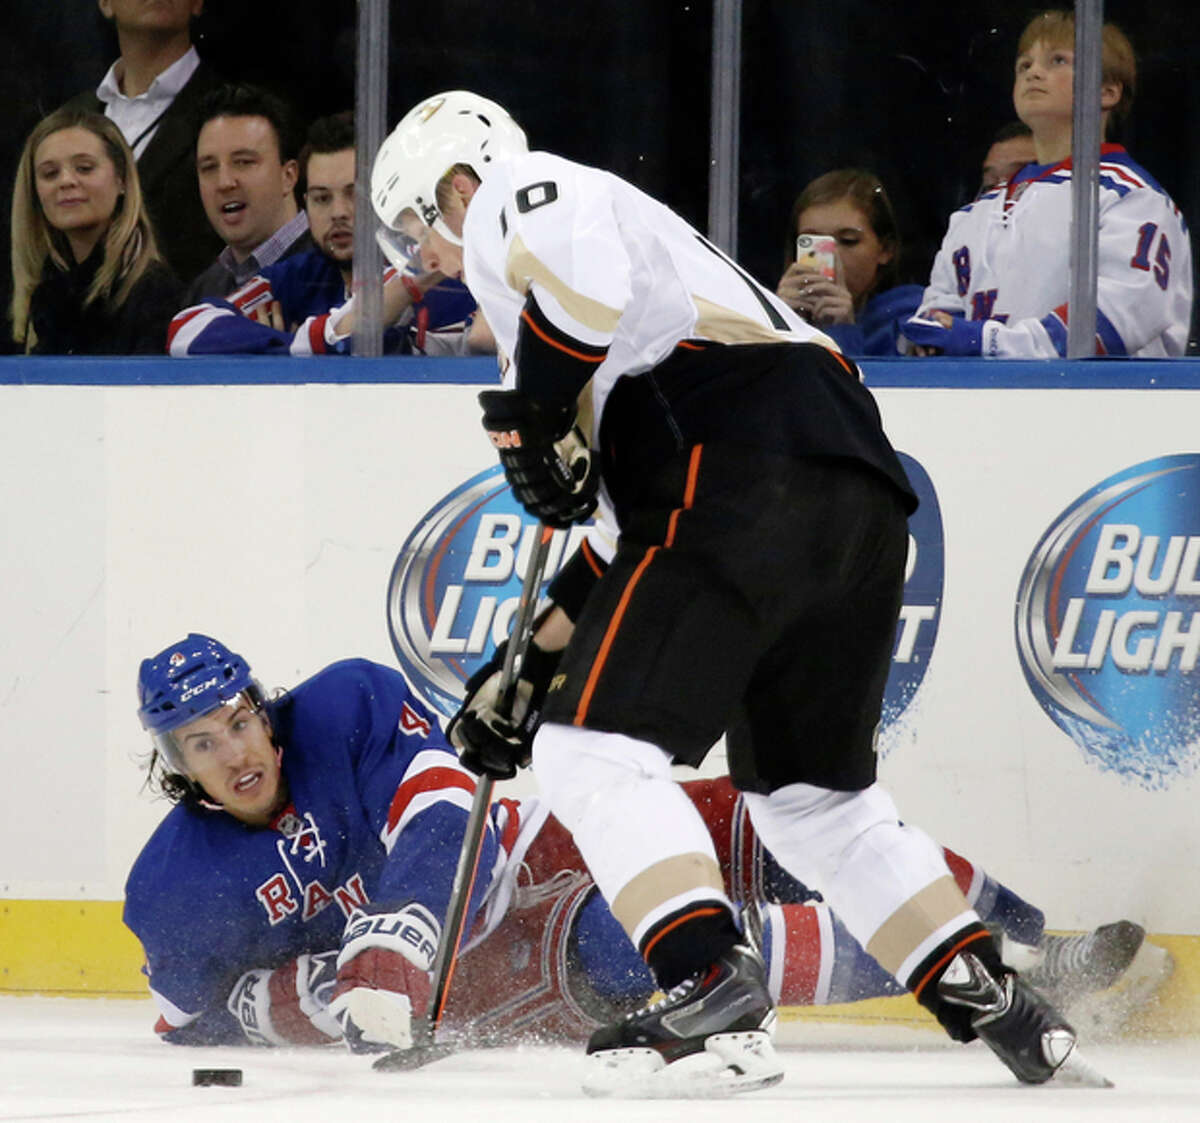 Anaheim Ducks right wing Corey Perry (10) gets control of the puck as New York Rangers defenseman Michael Del Zotto (4) lies on the ice in the first period of an NHL hockey game at Madison Square Garden in New York, Monday, Nov. 4, 2013. (AP Photo/Kathy Willens)